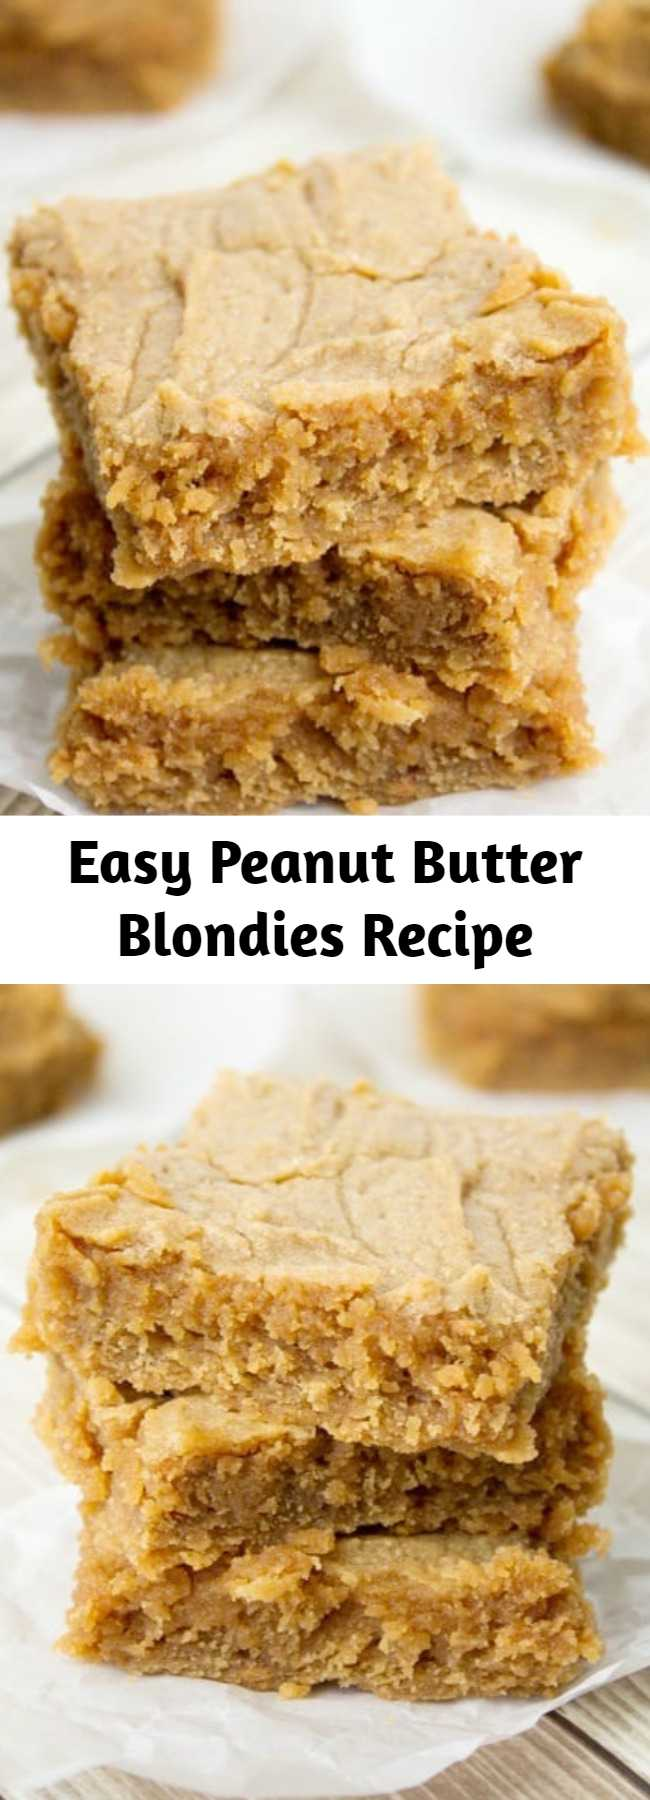 Easy Peanut Butter Blondies Recipe - An easy and delicious peanut butter blondie recipe – you will not miss the chocolate at all. Great peanut butter taste and an ultra-fudgy center.